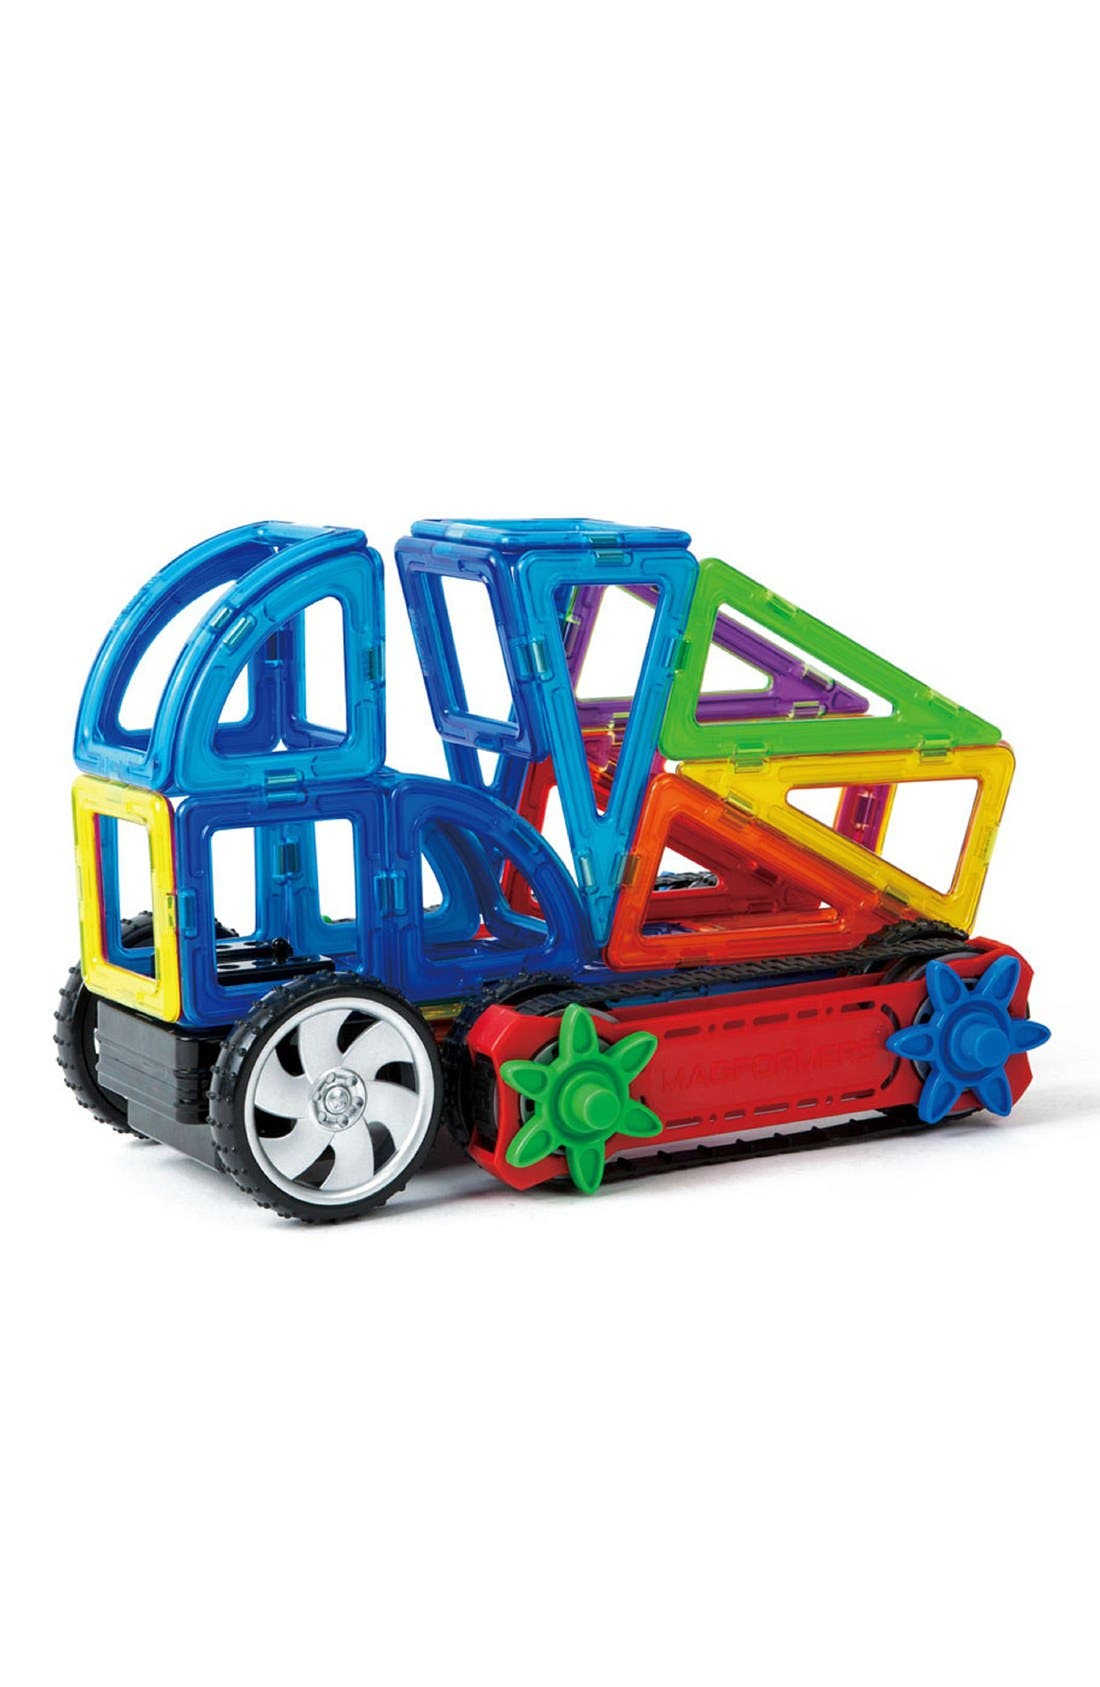 'Dynamic Wheel' Magnetic Remote Control Vehicle Construction Set,                             Alternate thumbnail 2, color,                             960